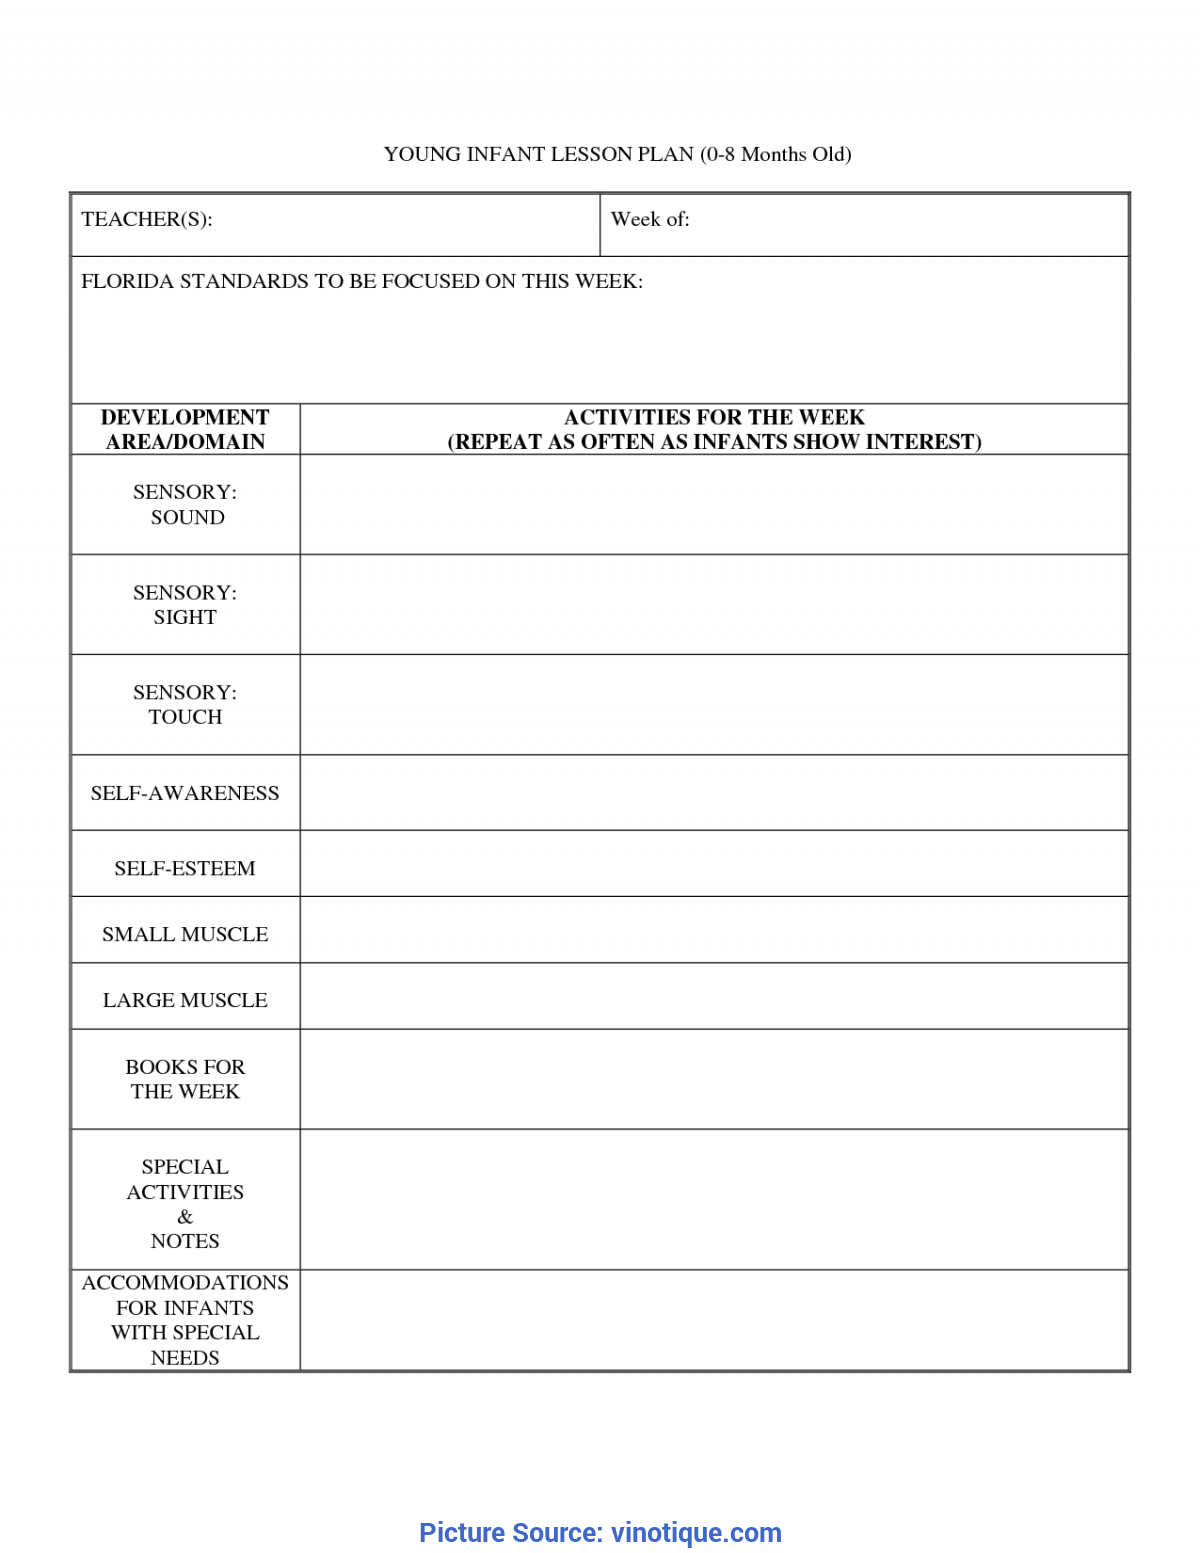 Blank Lesson Plan Template | Simple Weekly Lesson Plan Template For Infants And Toddlers Best